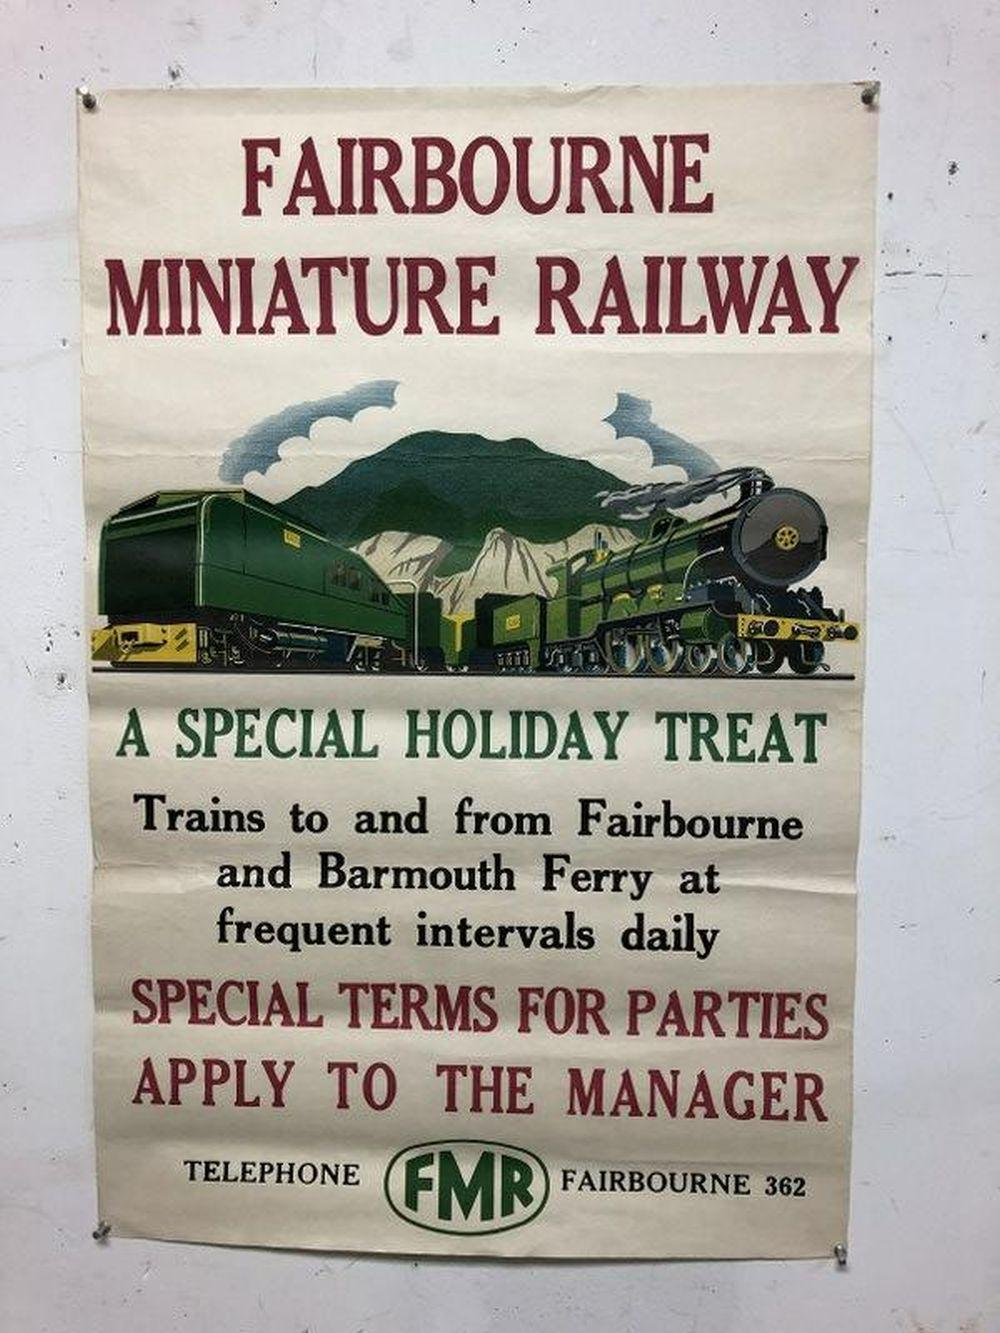 FAIRBOURNE MINIATURE RAILWAY POSTER, CIRCA 1950